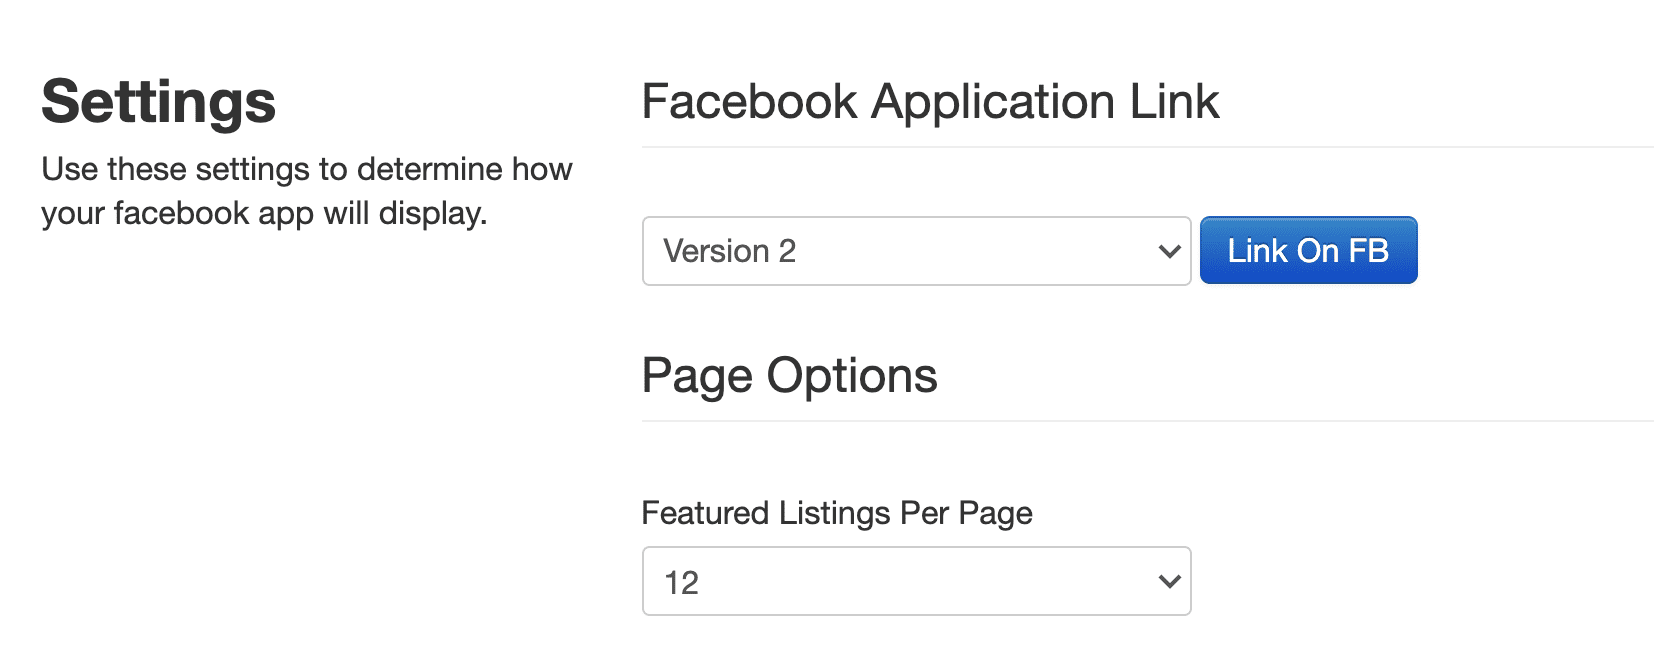 Next, click the Settings Tab and then the button 'Link on FB'.